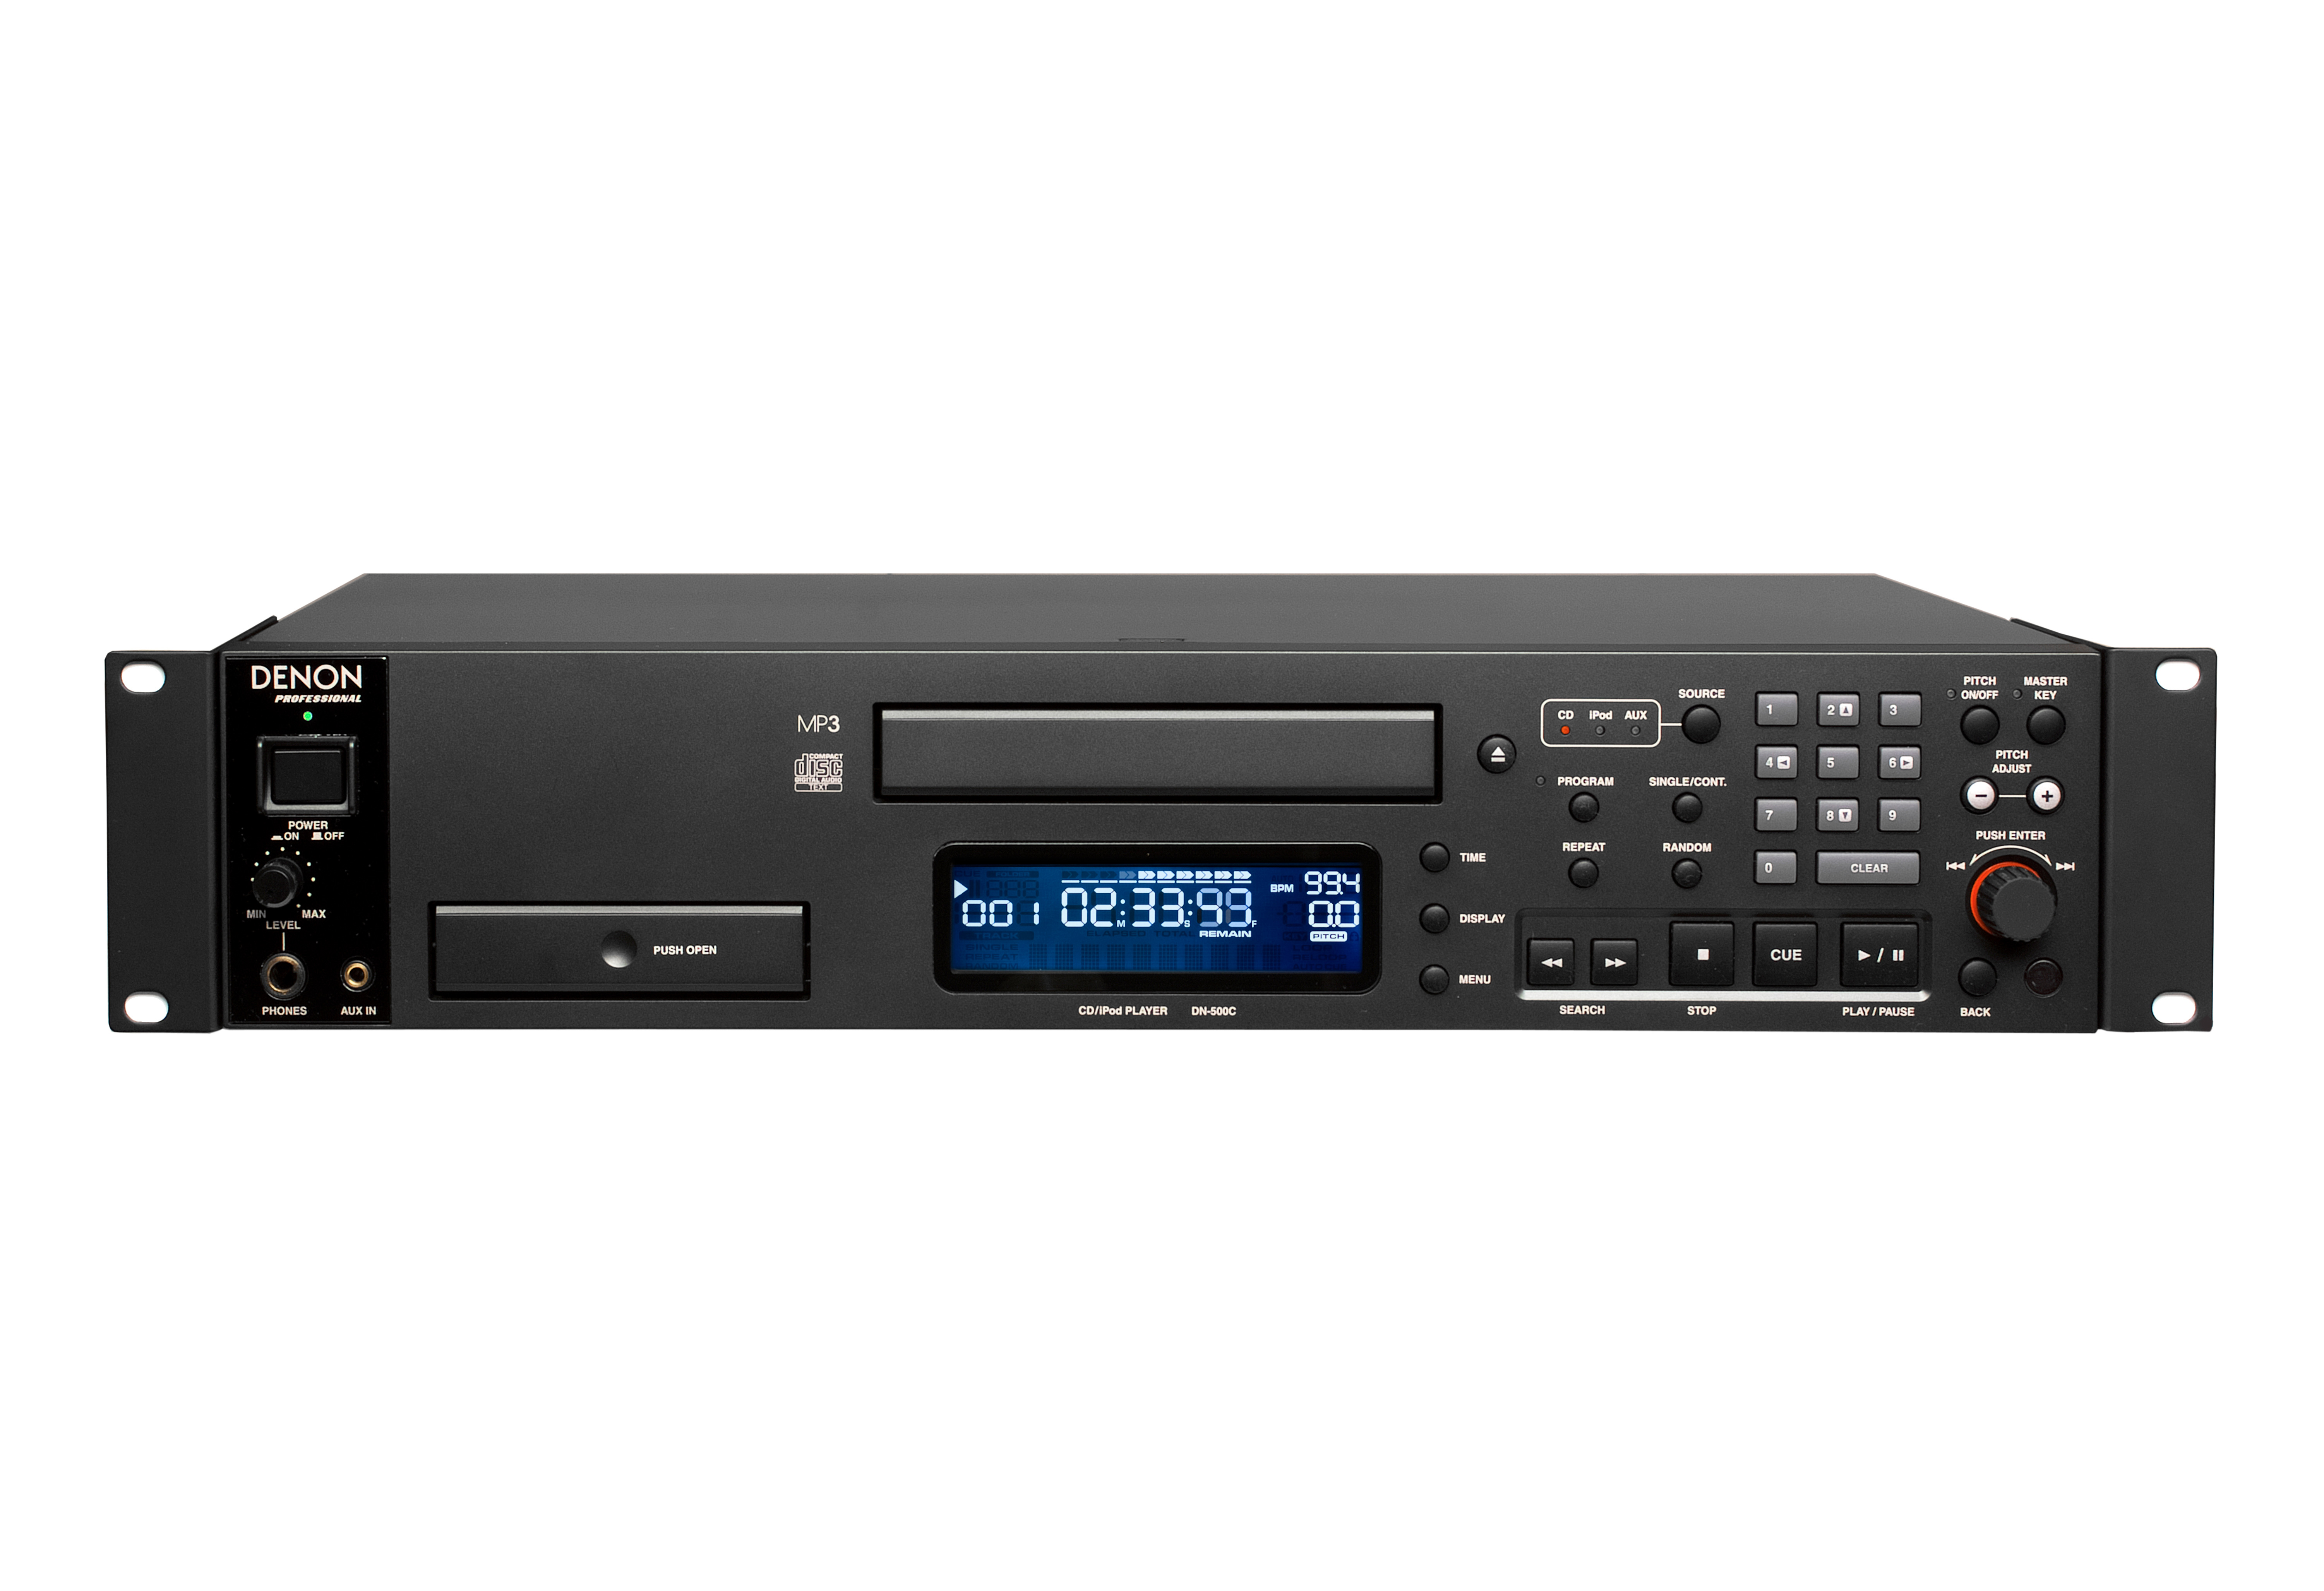 denon dn 500c cd player with integrated ipod dock. Black Bedroom Furniture Sets. Home Design Ideas